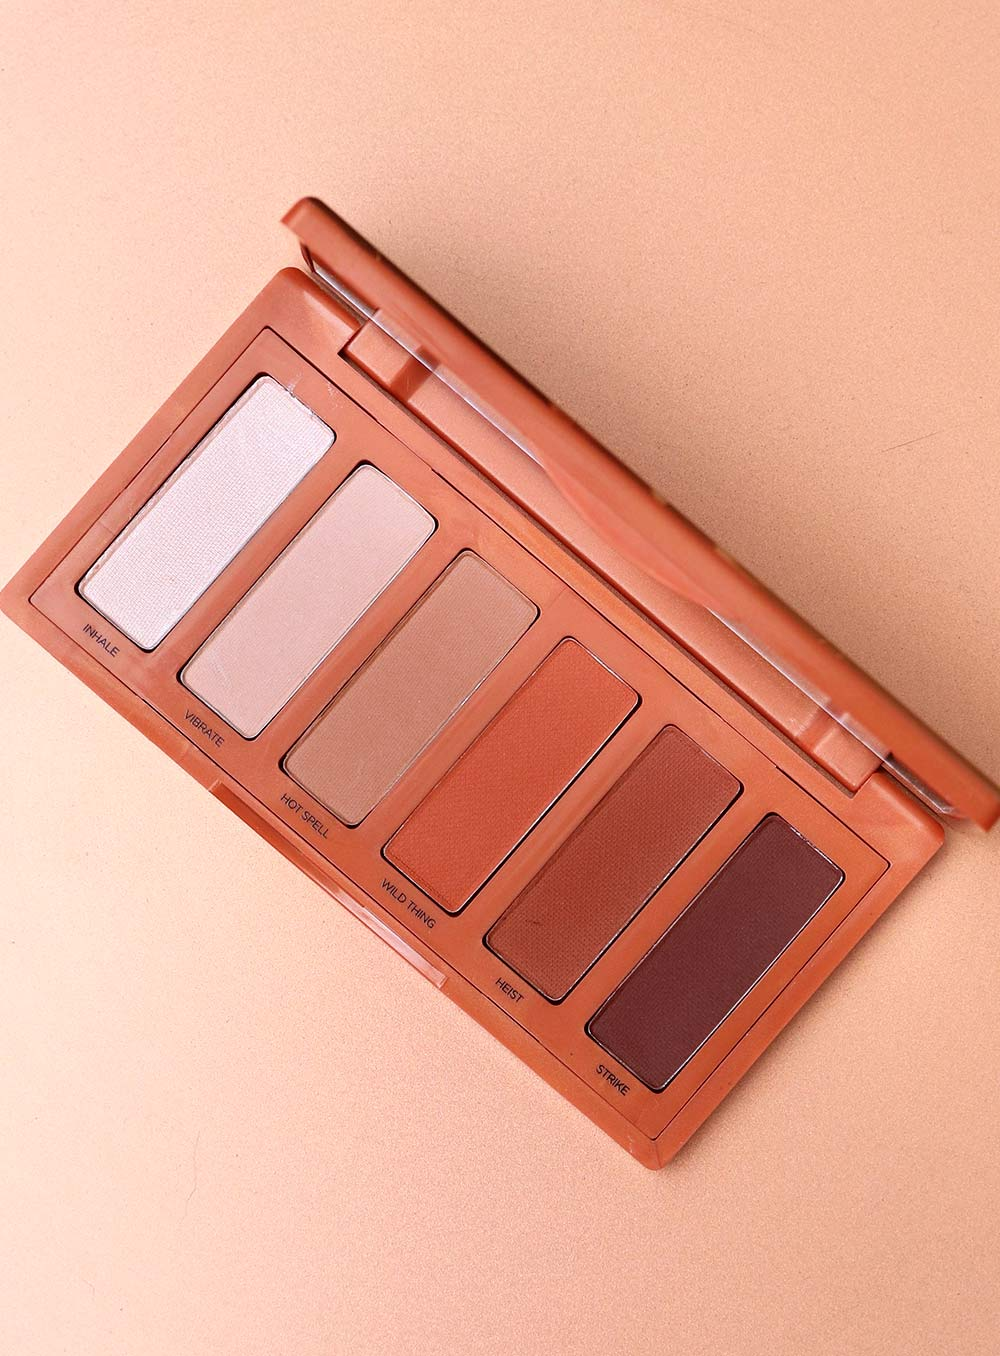 urban decay naked petite heat swatches